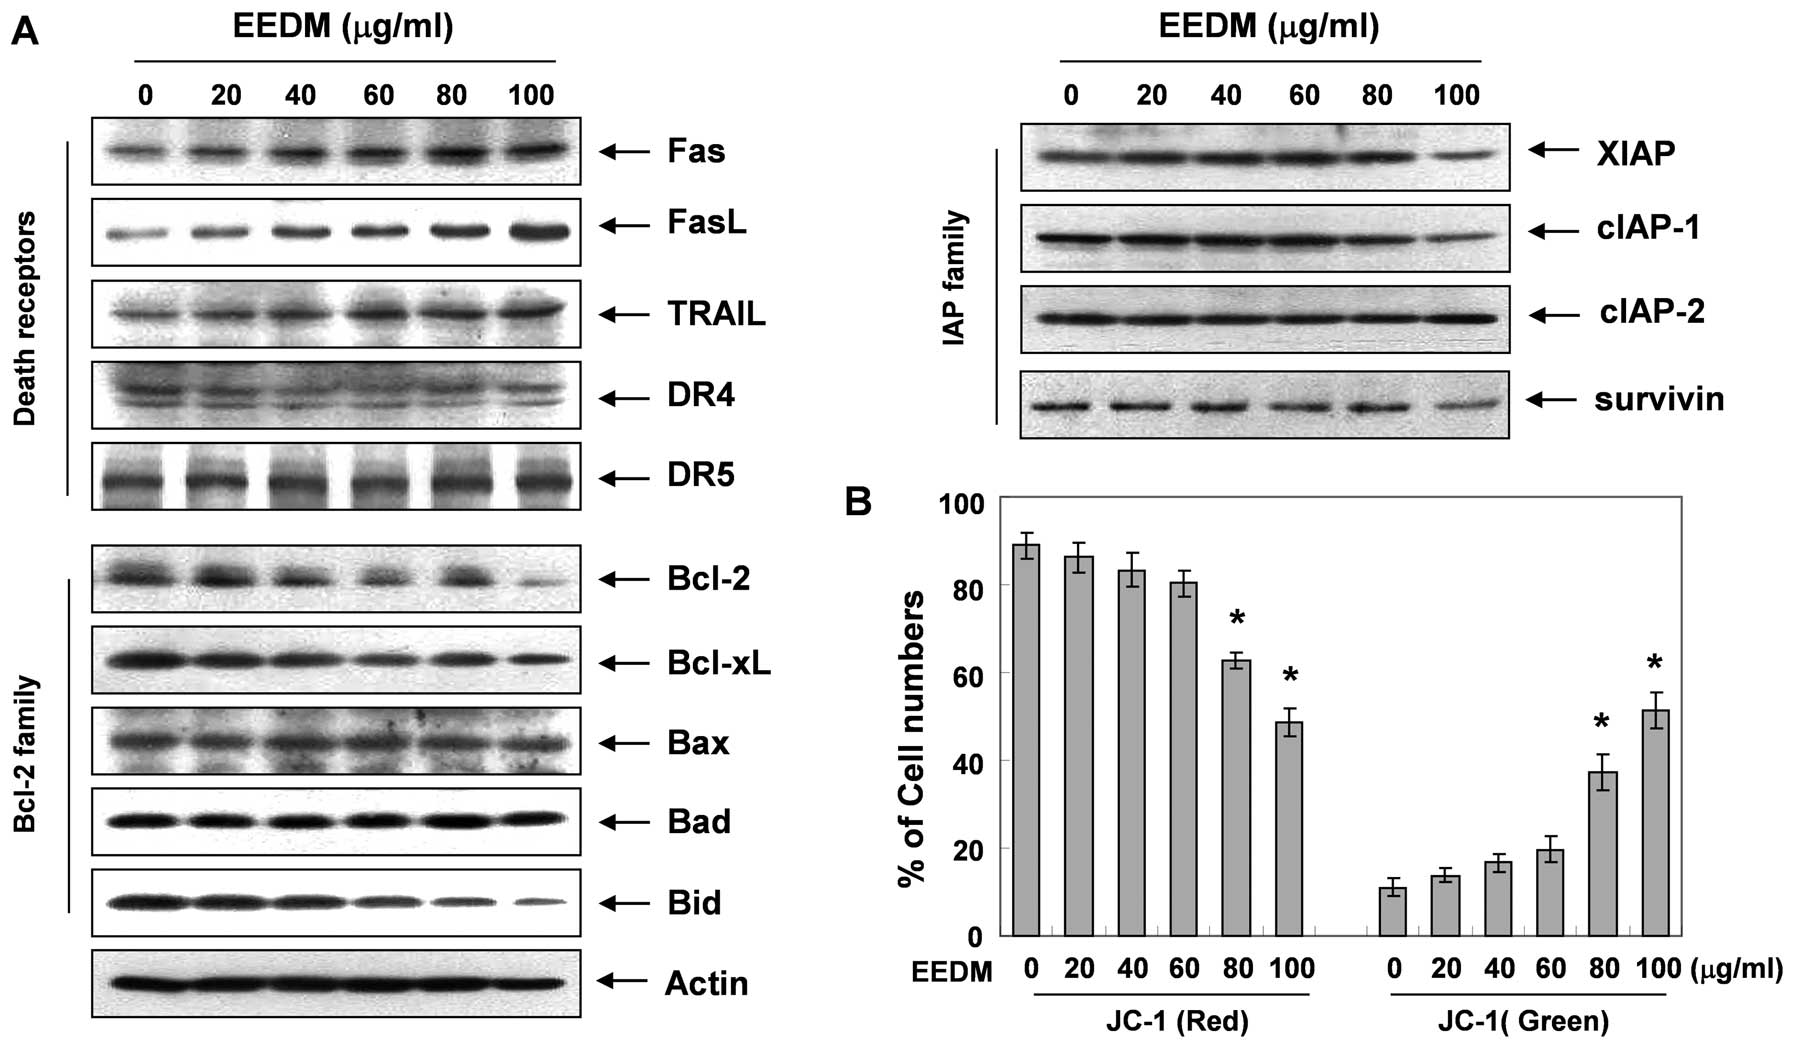 Induction Of Human Leukemia U937 Cell Apoptosis By An